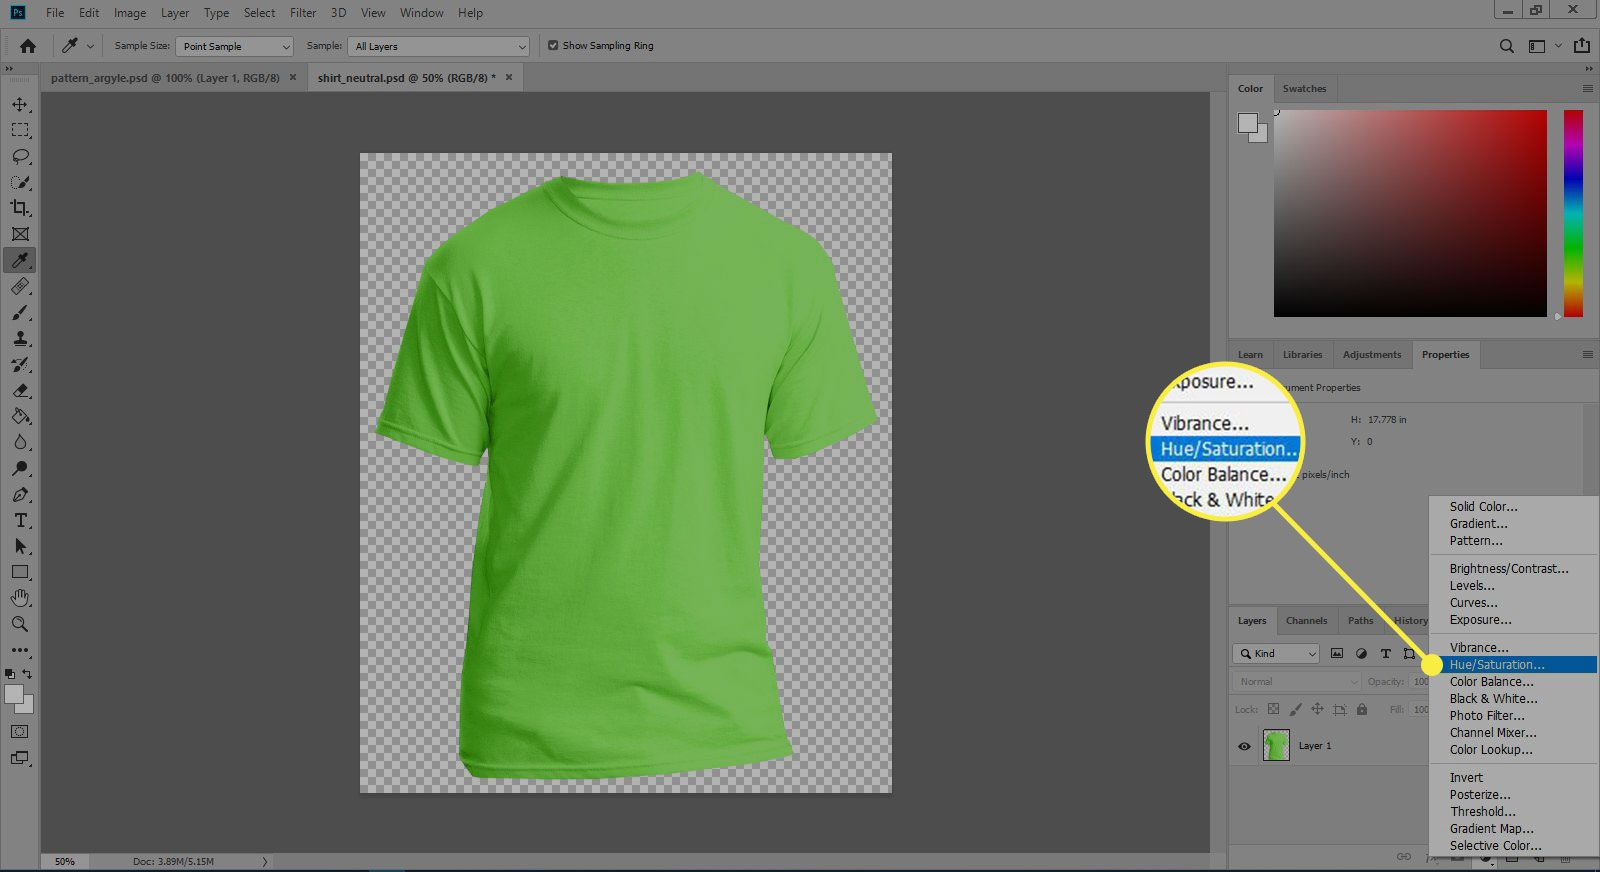 A screenshot of Photoshop with the Hue/Saturation option highlighted